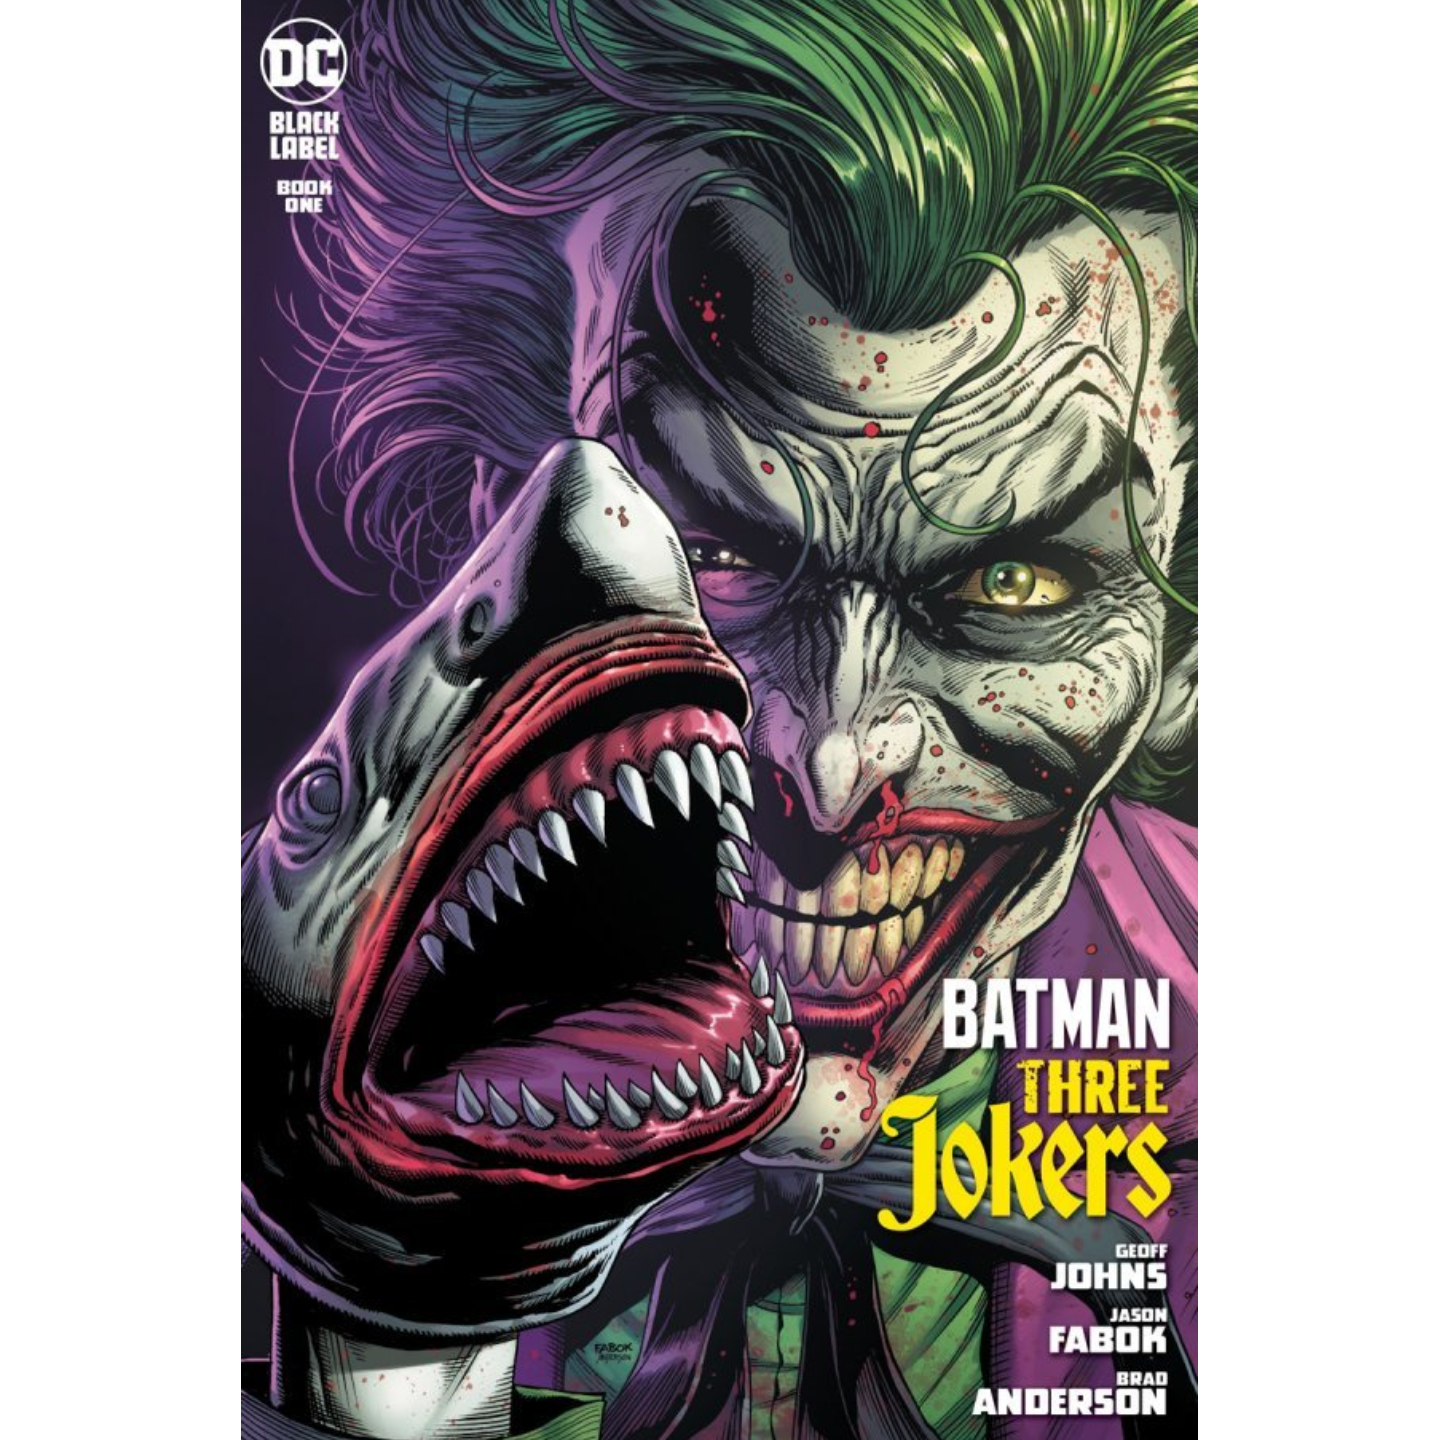 BATMAN THREE JOKERS #1 (OF 3) (MR) Second printing